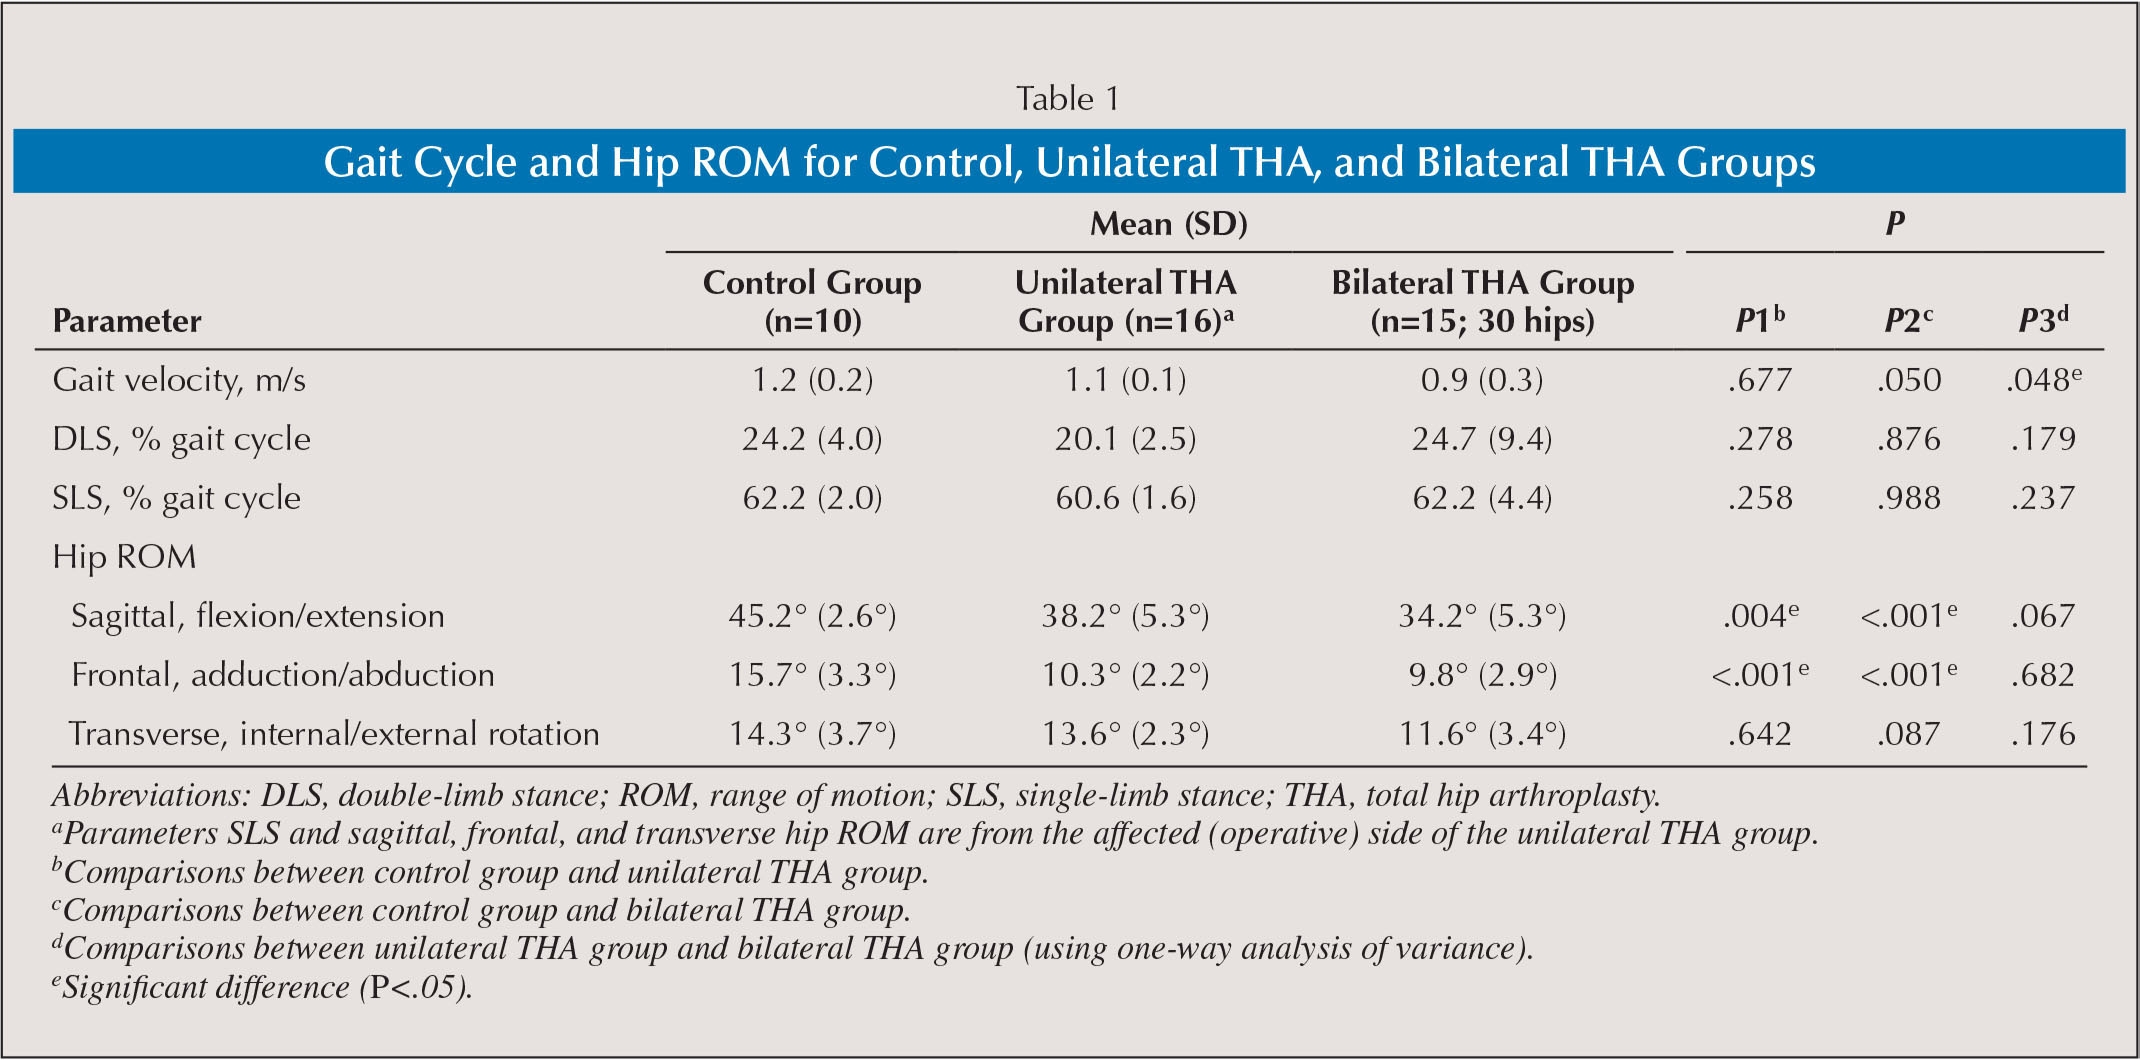 Gait Cycle and Hip ROM for Control, Unilateral THA, and Bilateral THA Groups